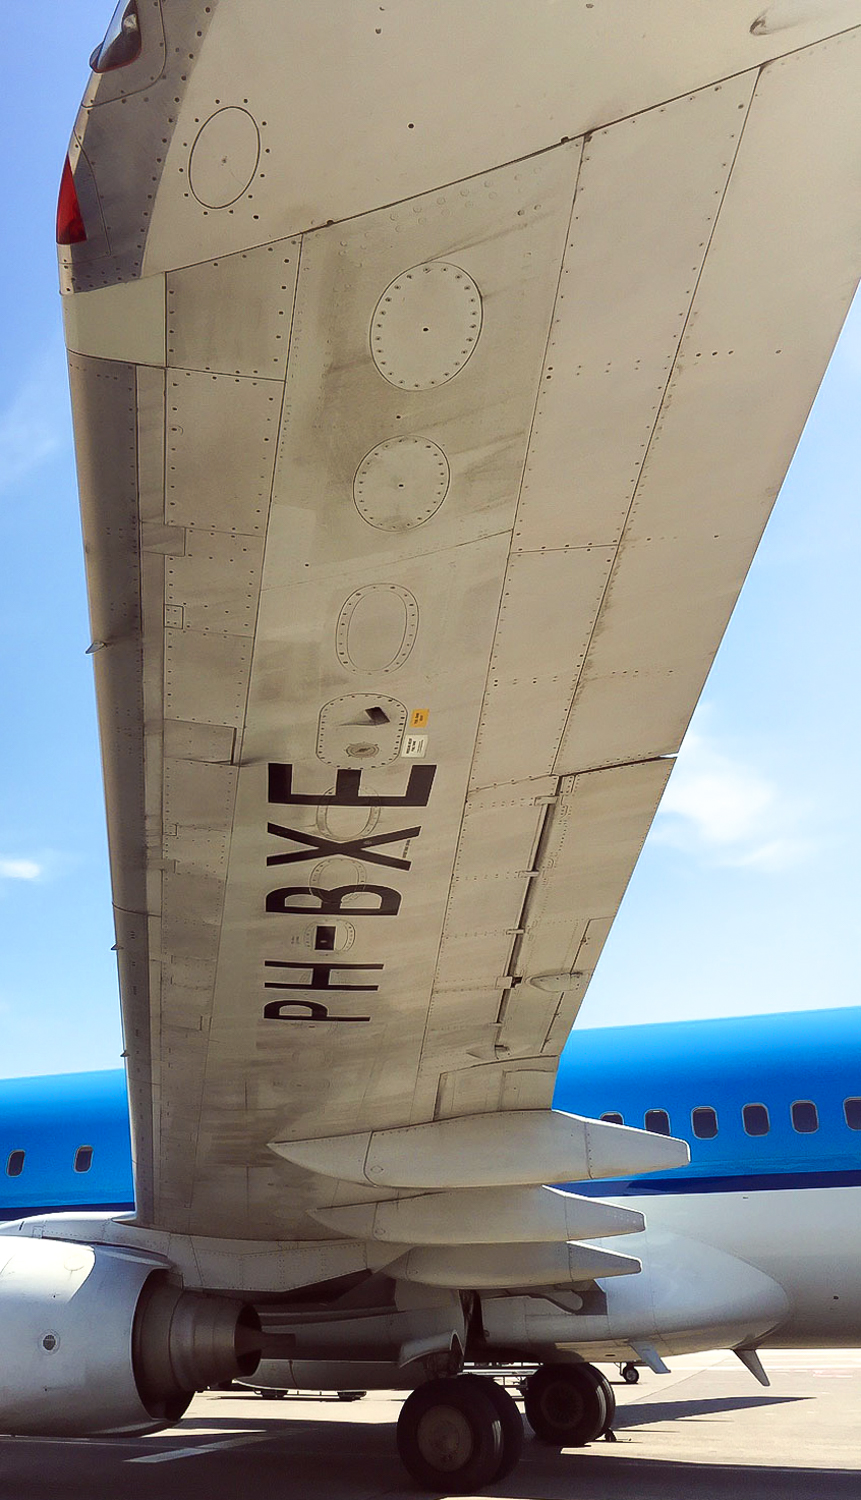 Underwing of an airplane -